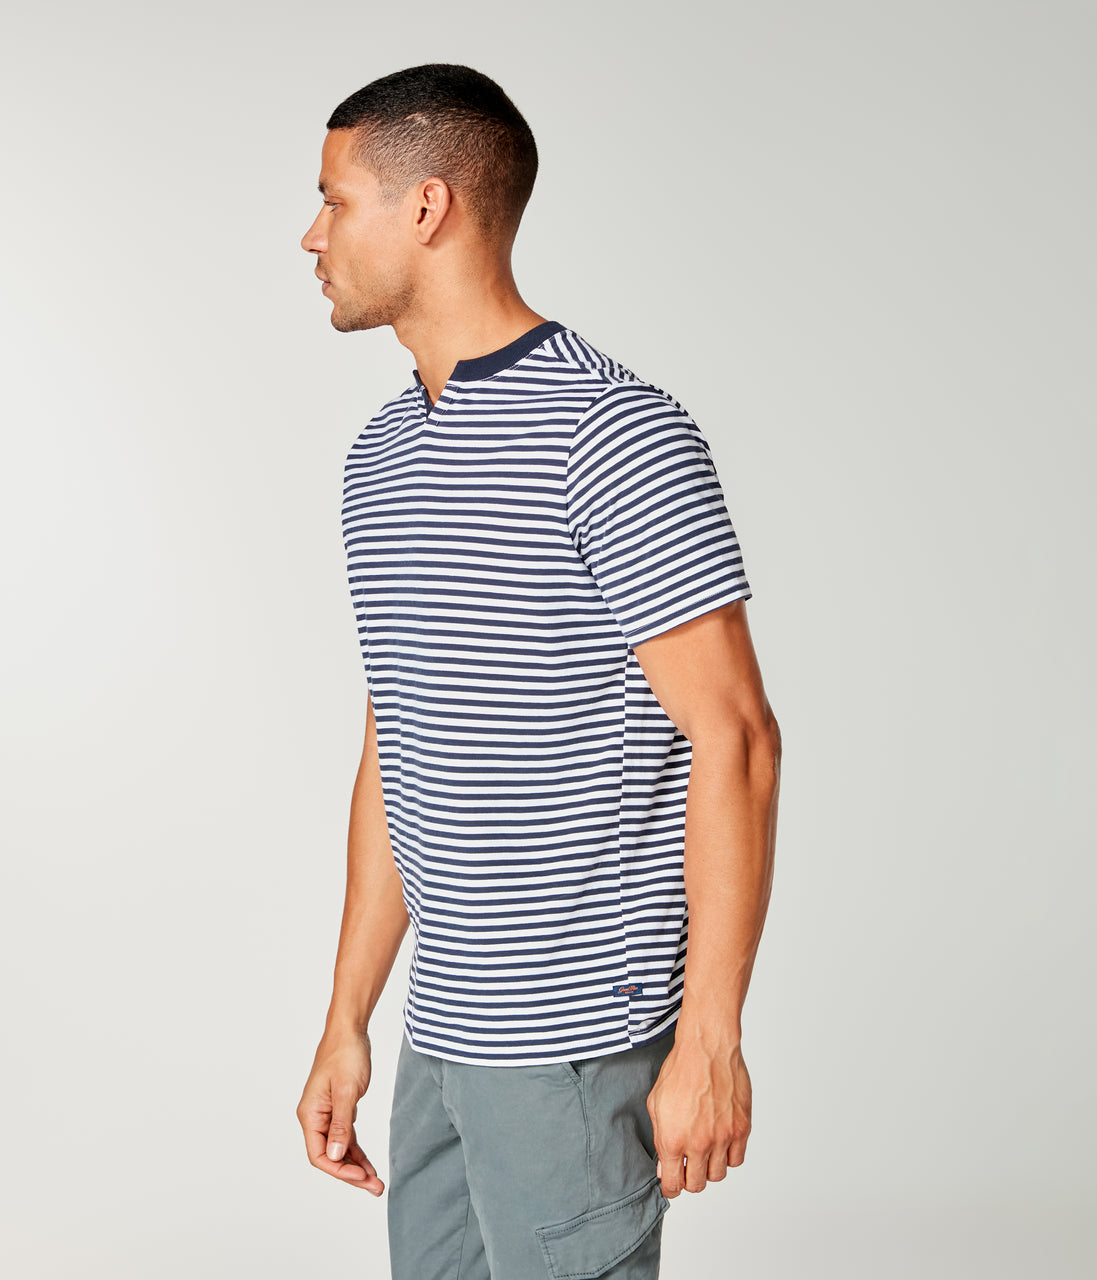 Stripe Jersey Razor Notch Neck Crew - Sky Captain - Good Man Brand - Stripe Jersey Razor Notch Neck Crew - Sky Captain